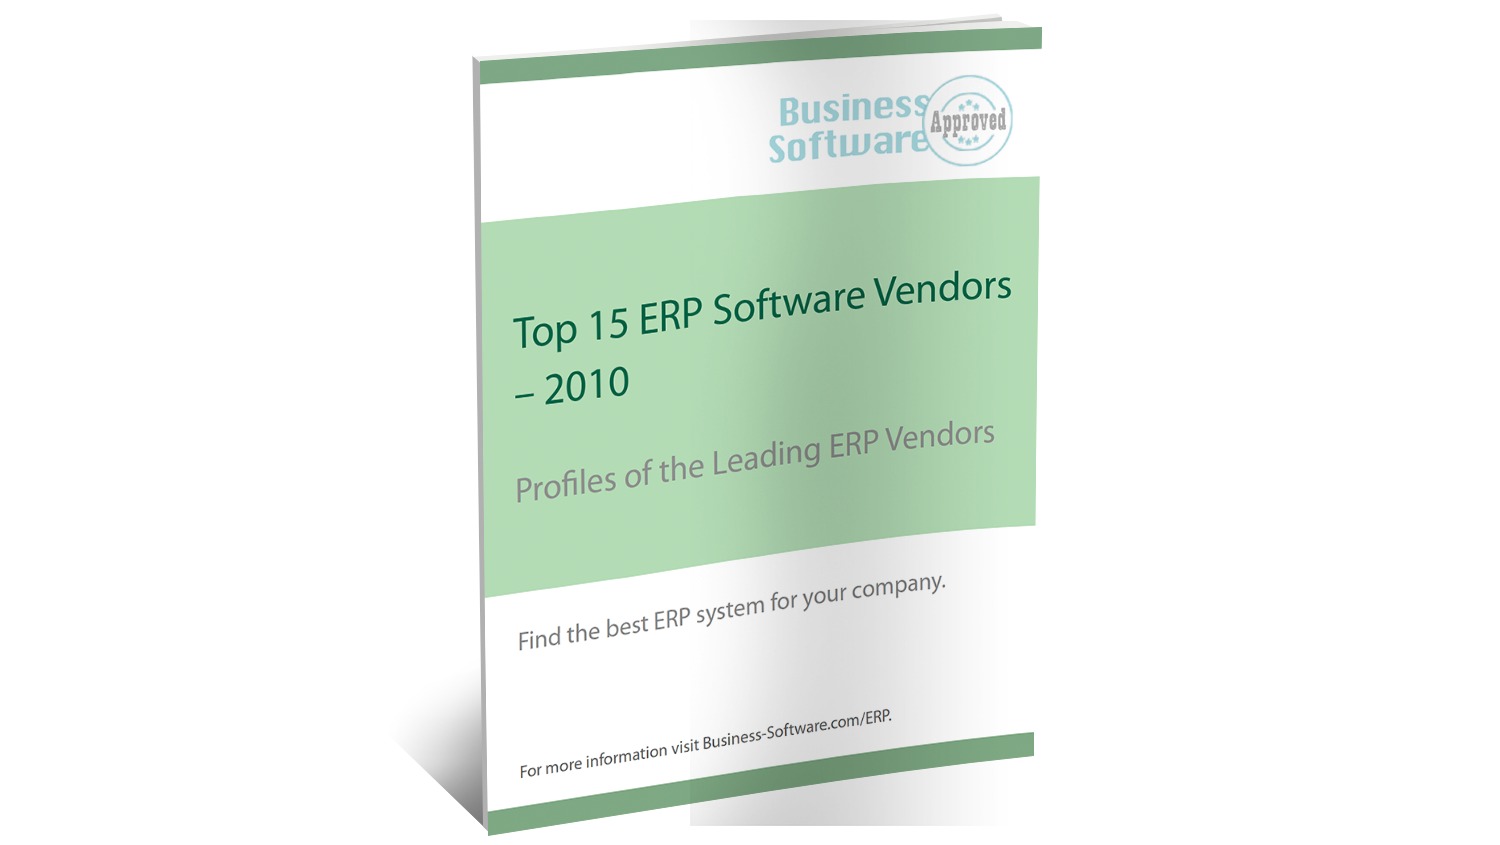 2010 BusinessSoftware.com Top ERP Software Vendors Report